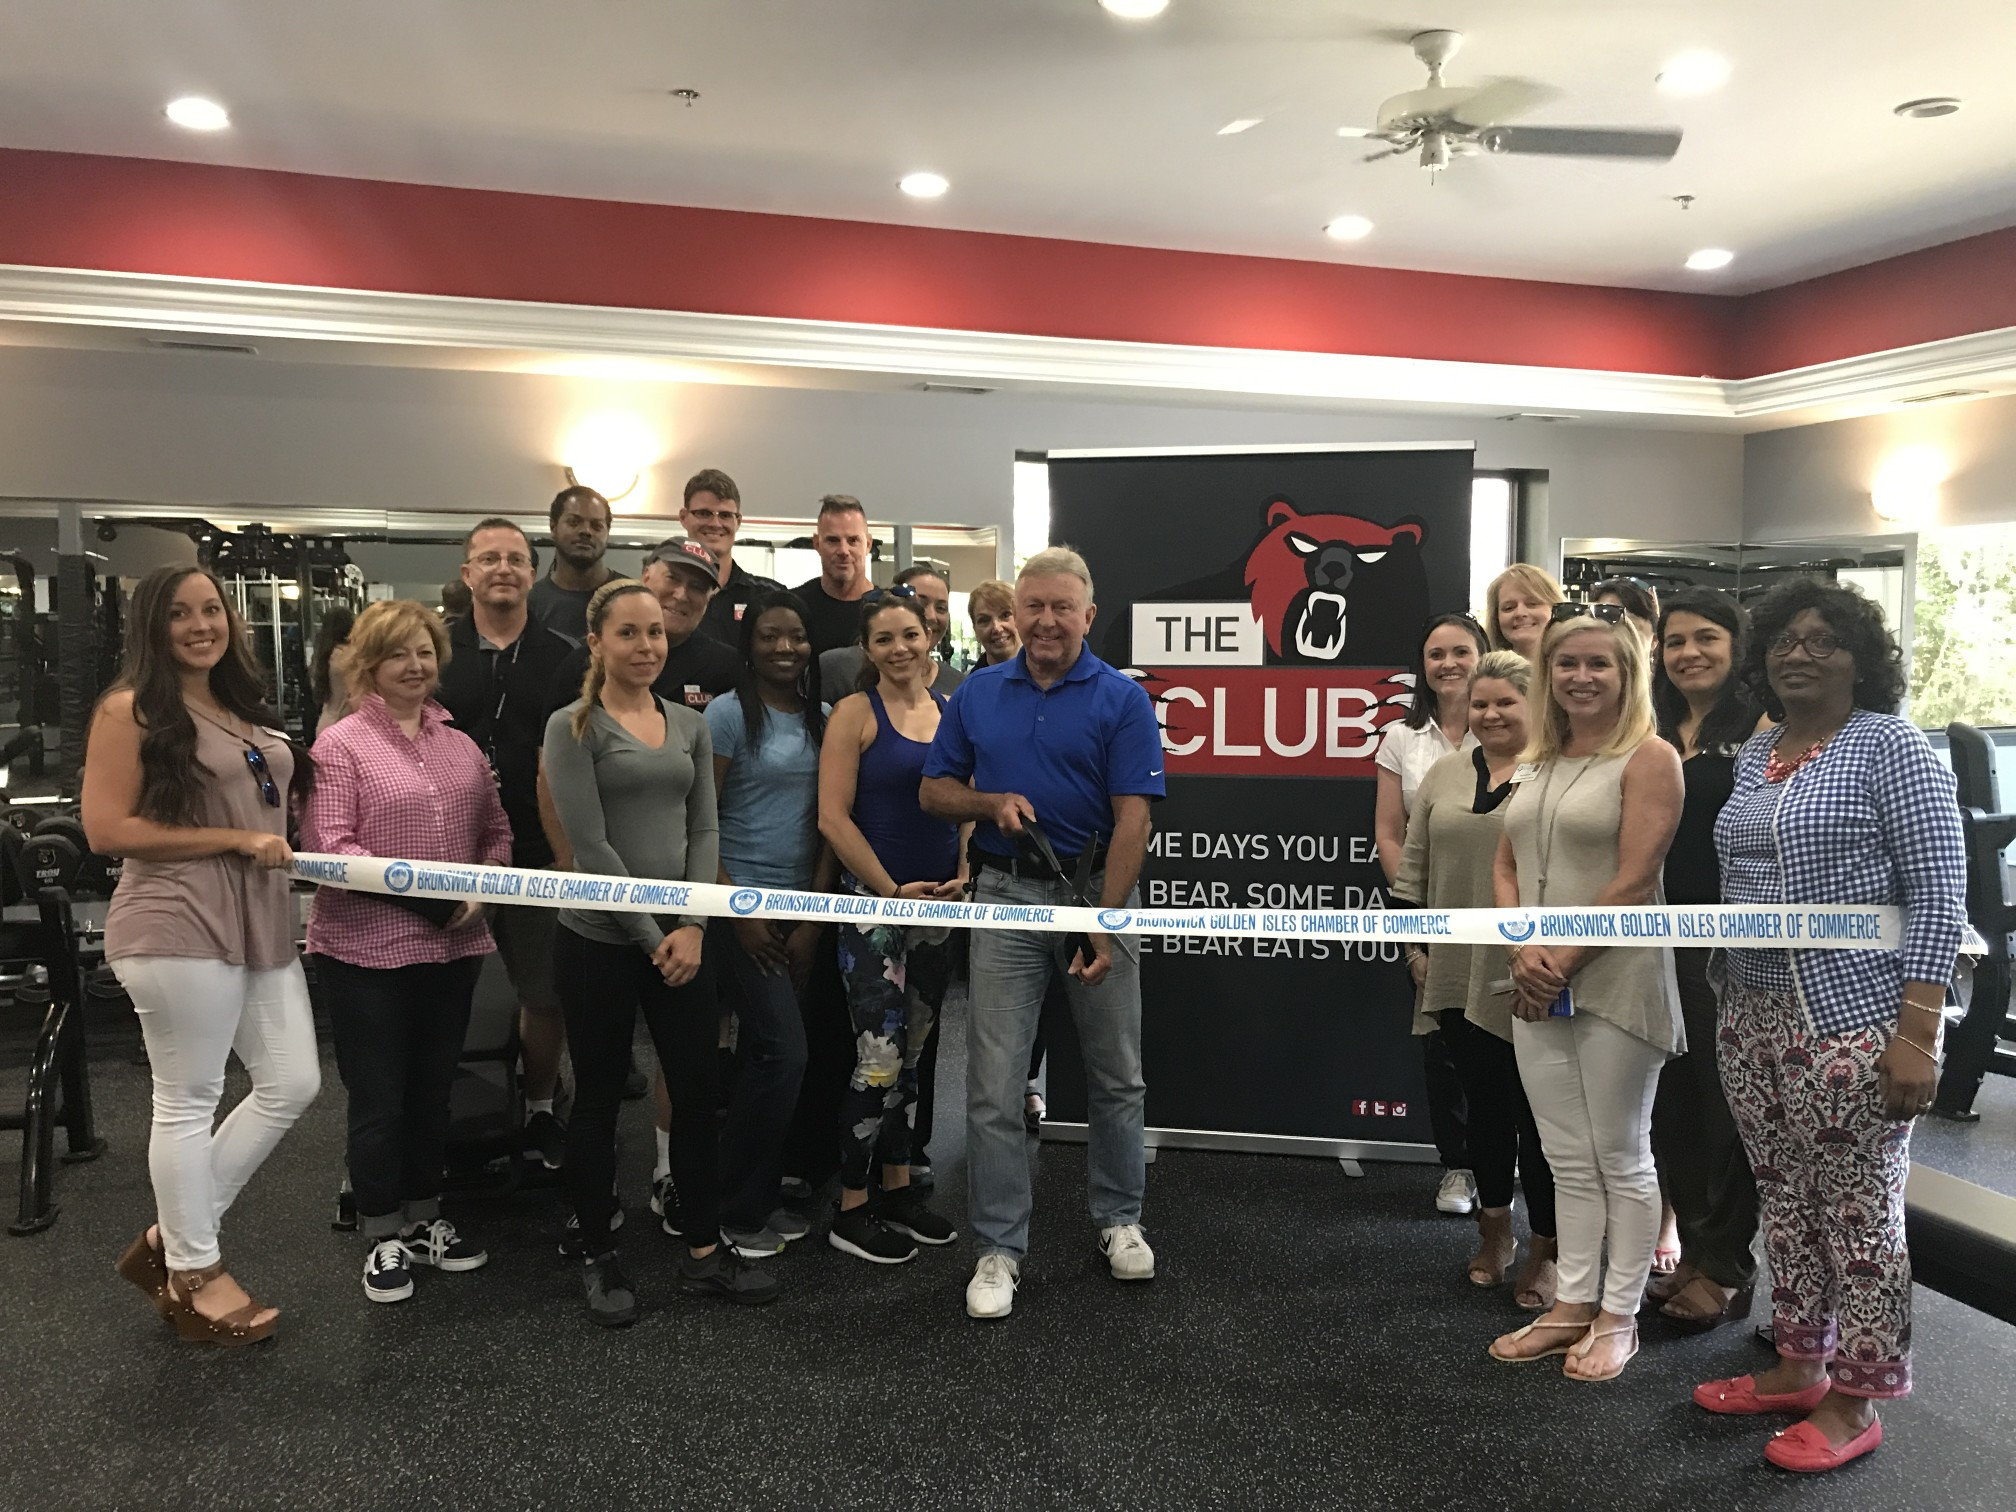 The-Club-ribbon-cutting.JPG-w2016.jpg